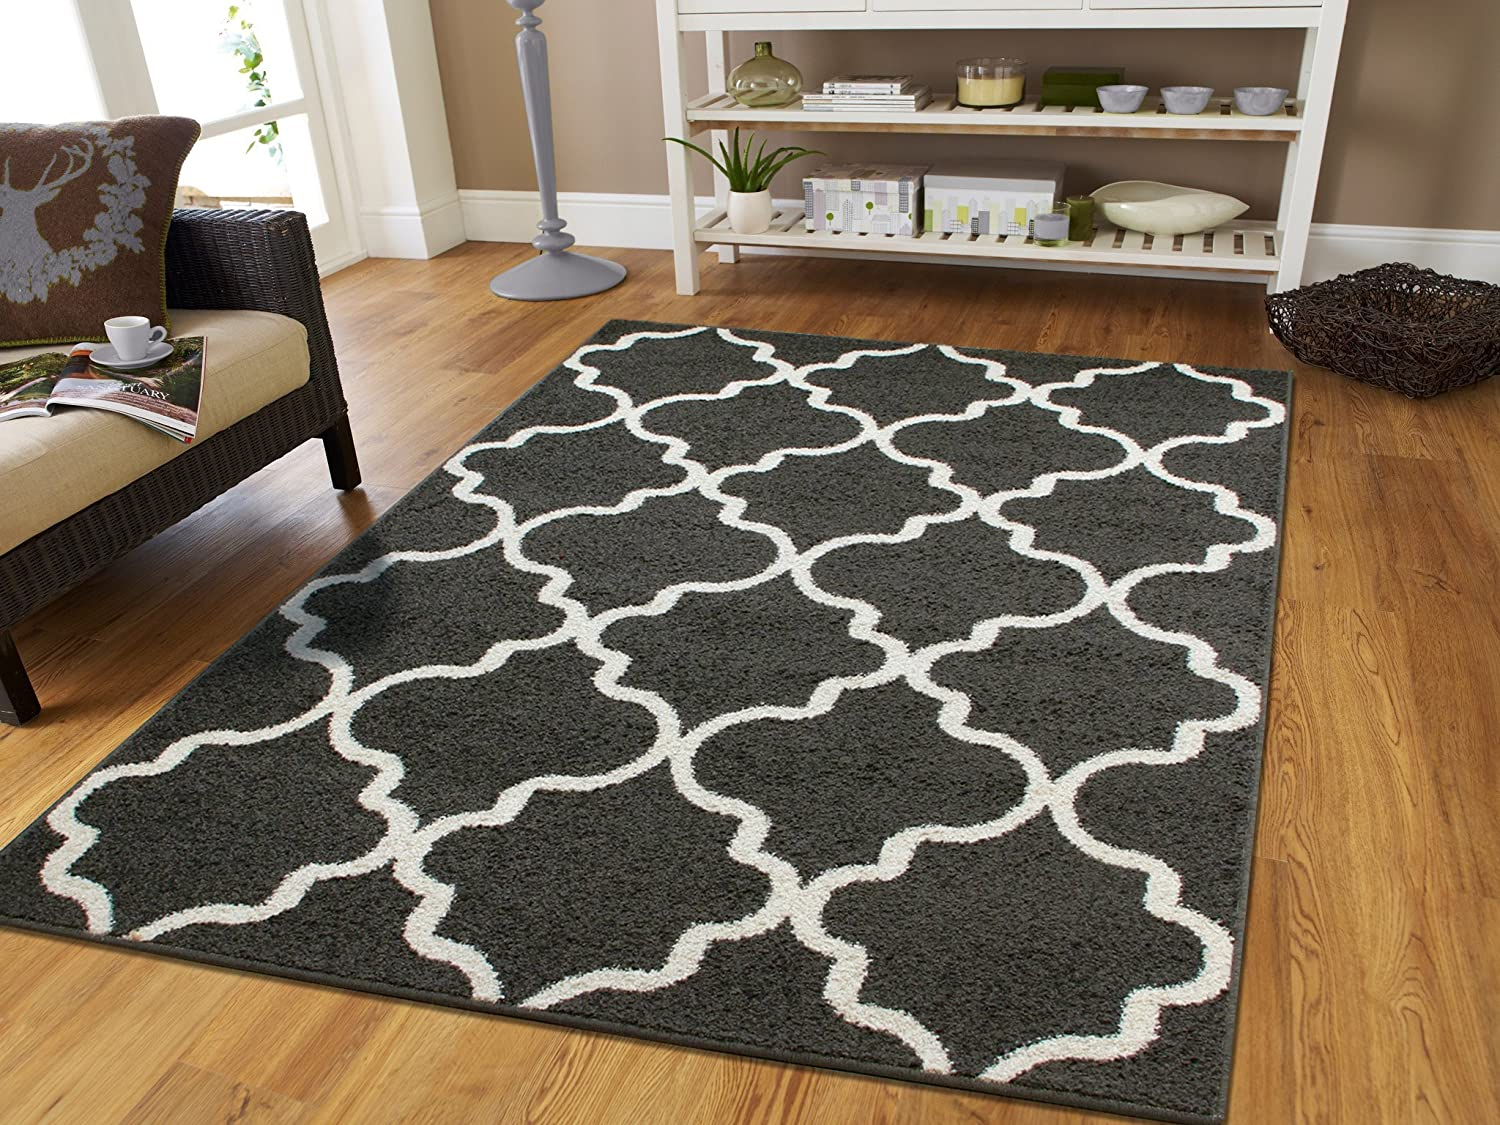 Amazon Luxury Rugs For Bedroom Teens 5x8 Contemporary Rug Grey 5x7 Area Morrocan Trellis Gray And White Modern Living Room